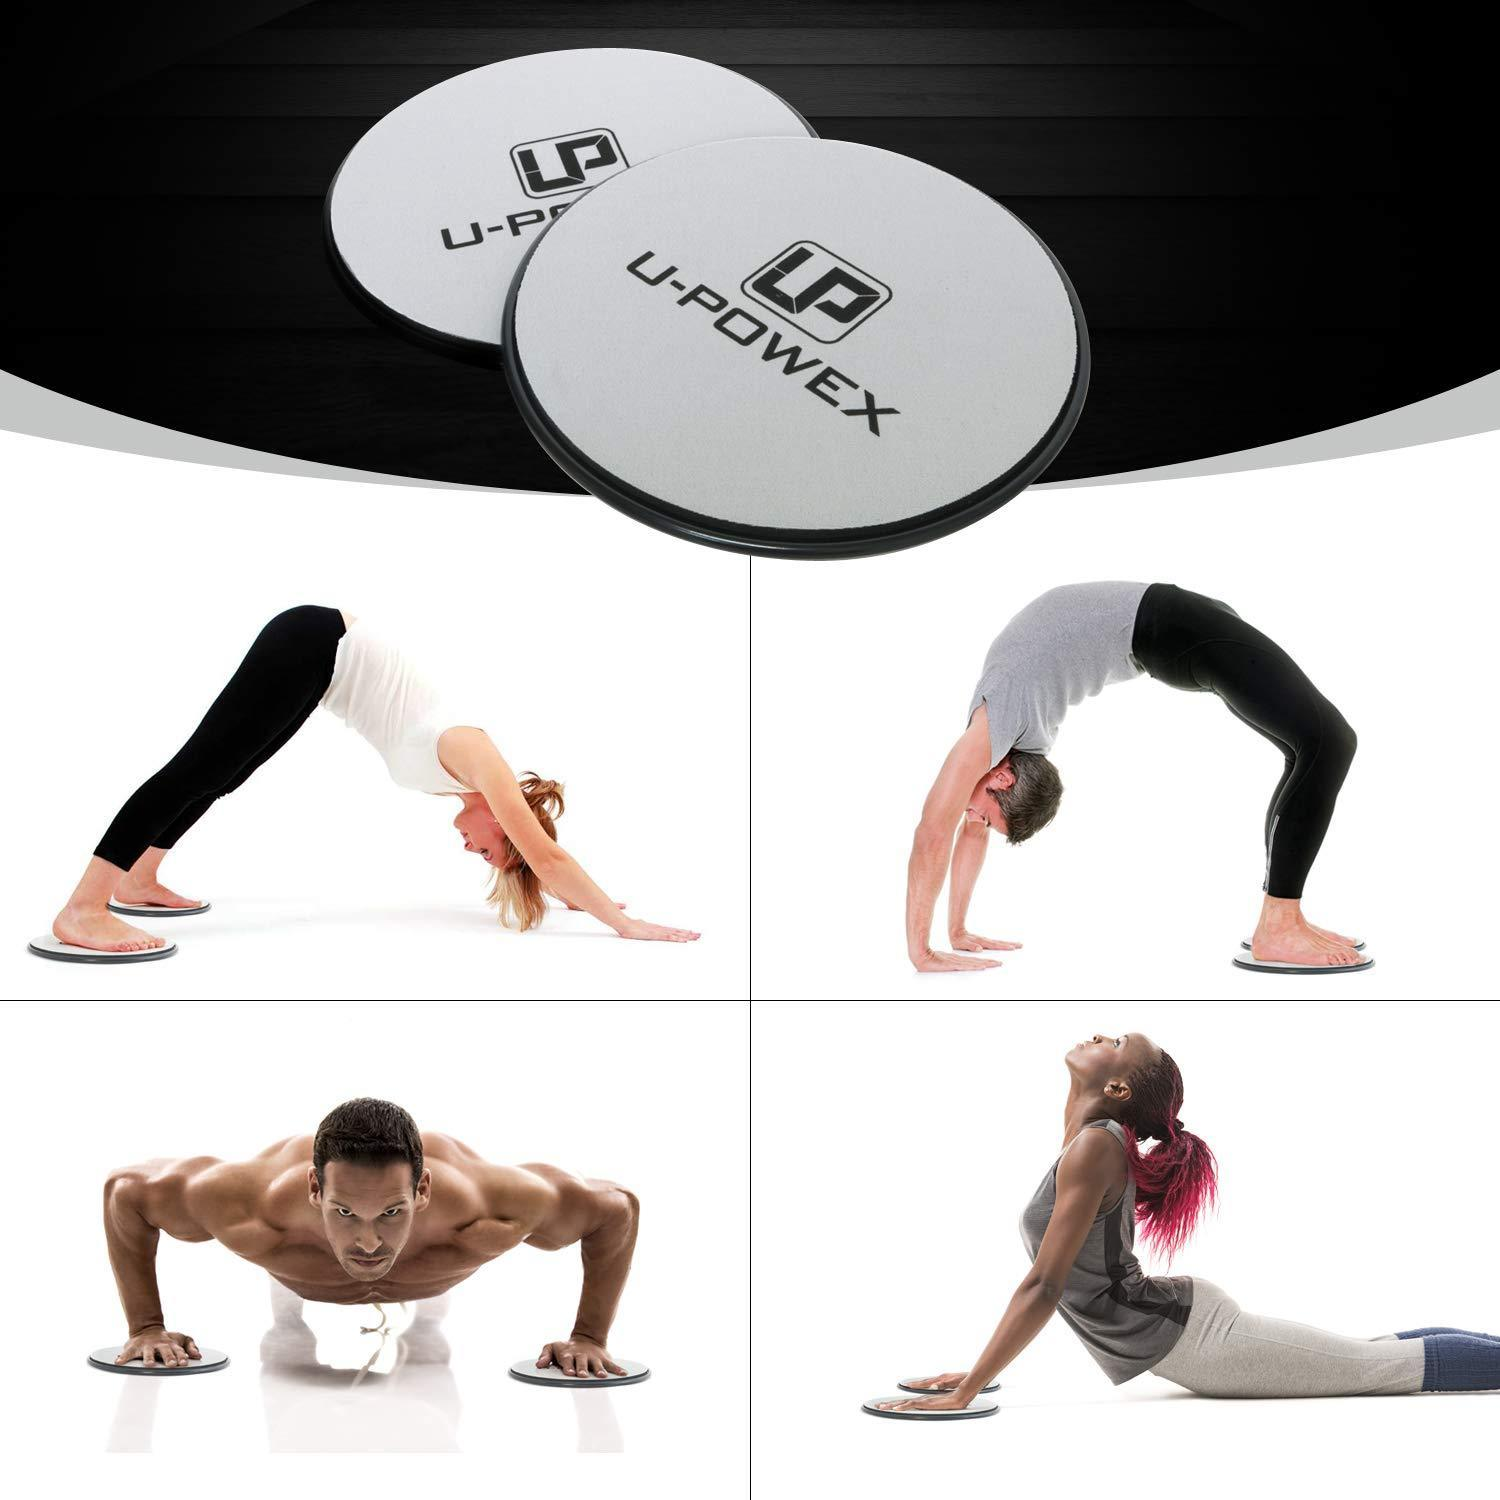 UPOWEX Exercise Sliders  Dual Sided Core Sliders – Work Smoothly on Any Surface. image 2